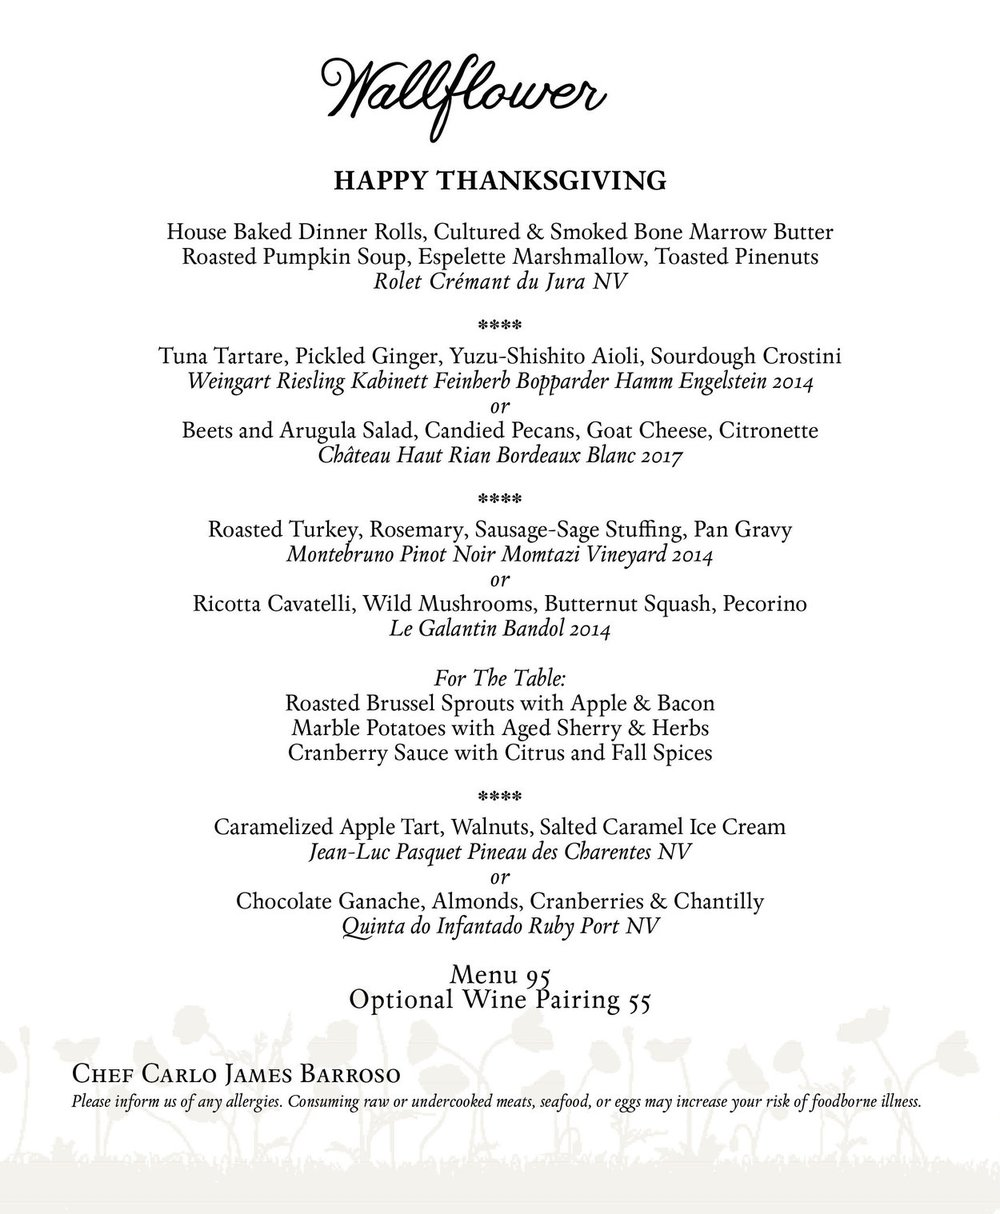 Thanksgiving Menu 20182.jpg